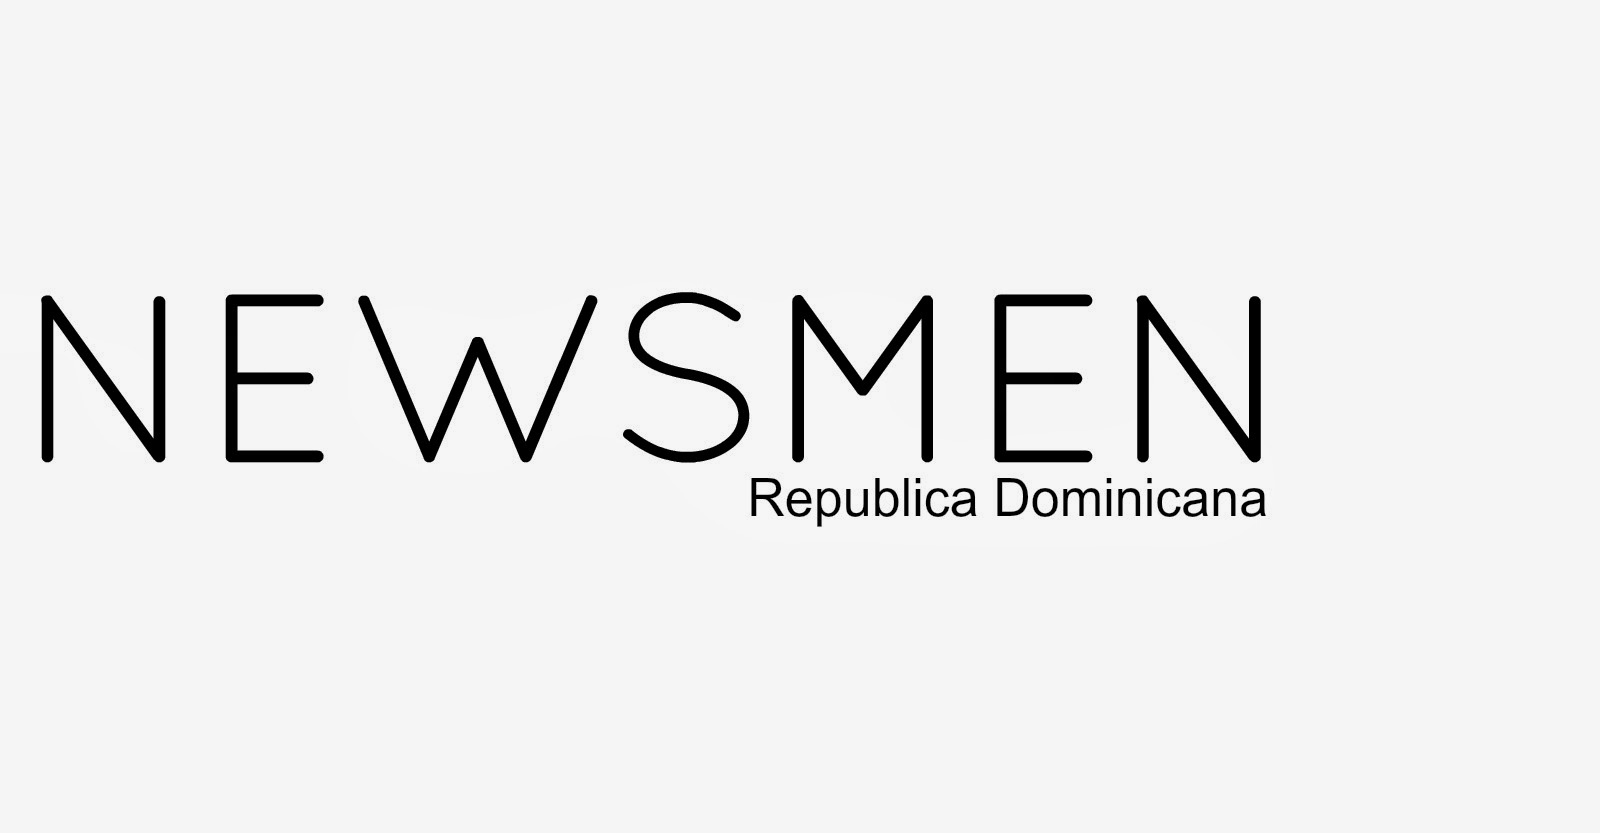 NEWSMEN Republica Dominicana - VISITANOS EN NUESTRA NUEVA WEB - HAS DOBLE CLIC